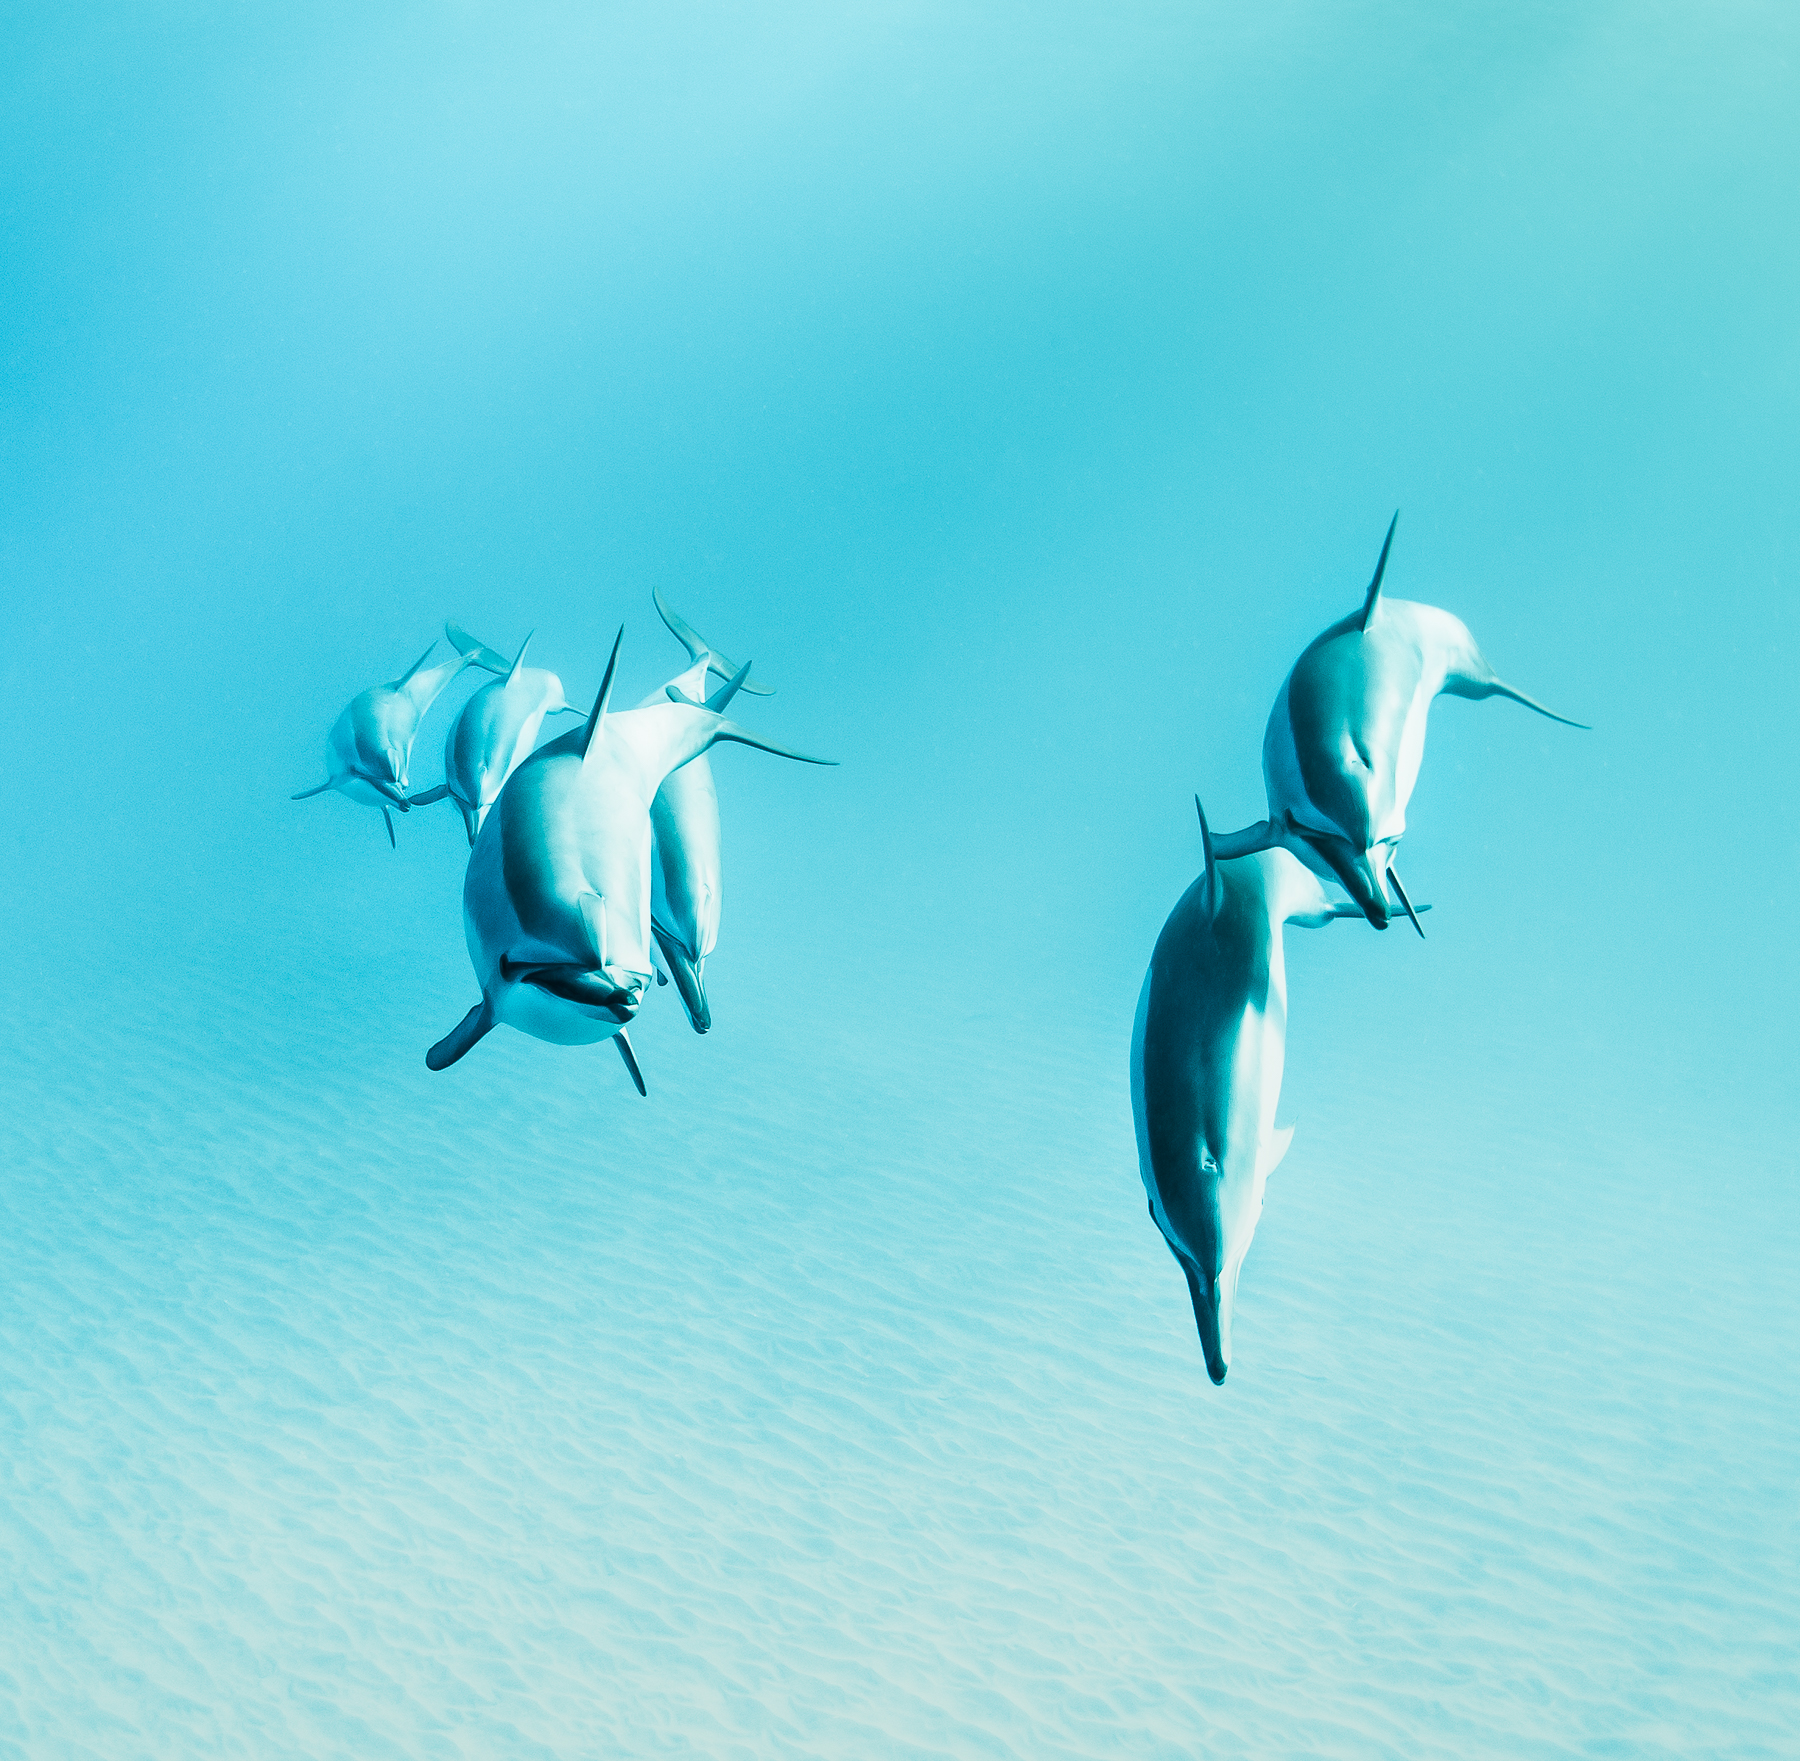 Sander_Cummings_Dolphins and Their Ways_Curious Turn_4.jpg